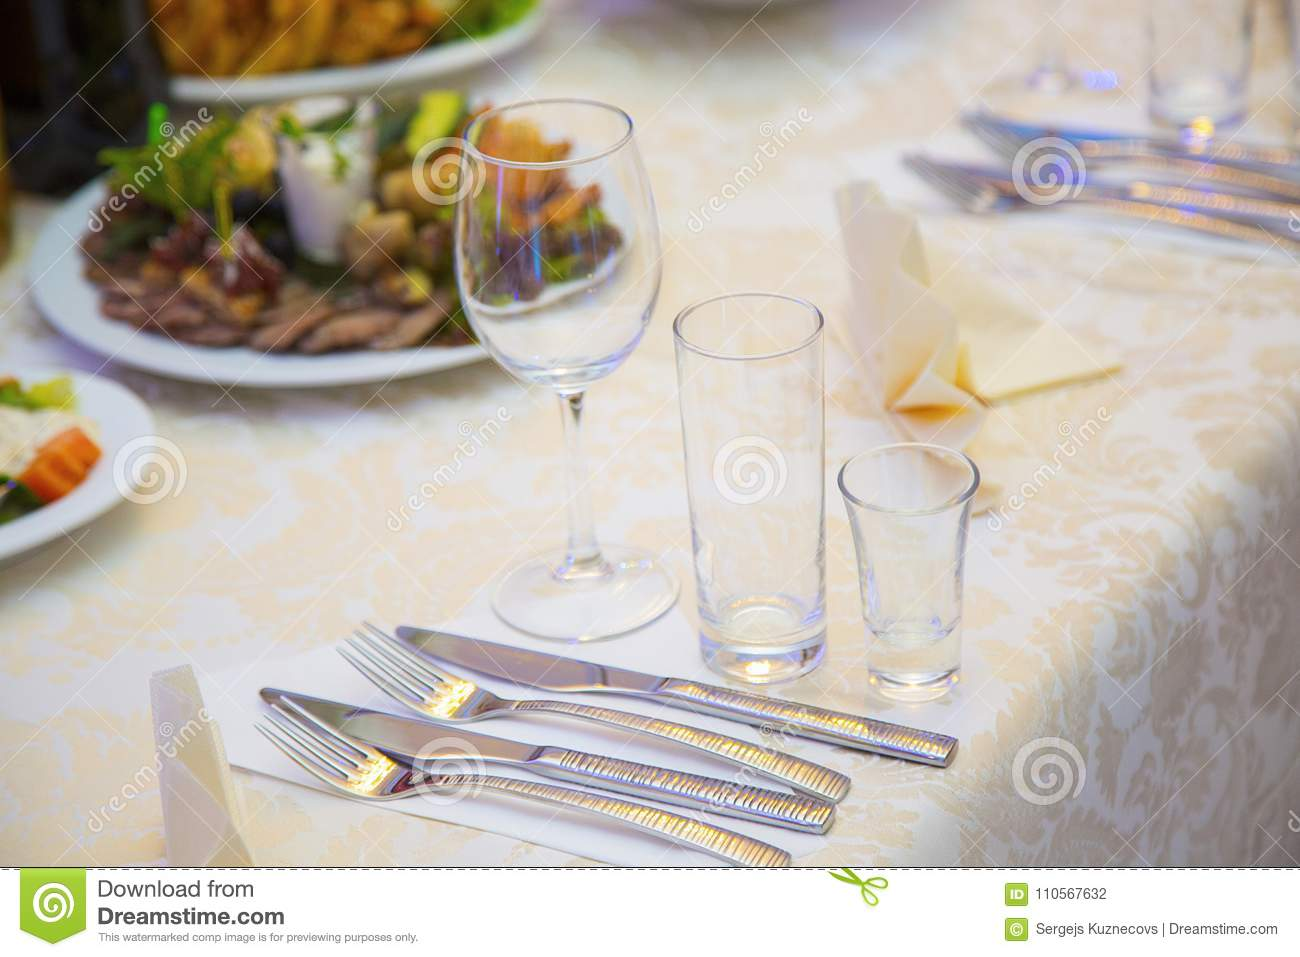 Table setting in a restaurant. Cutlery 8